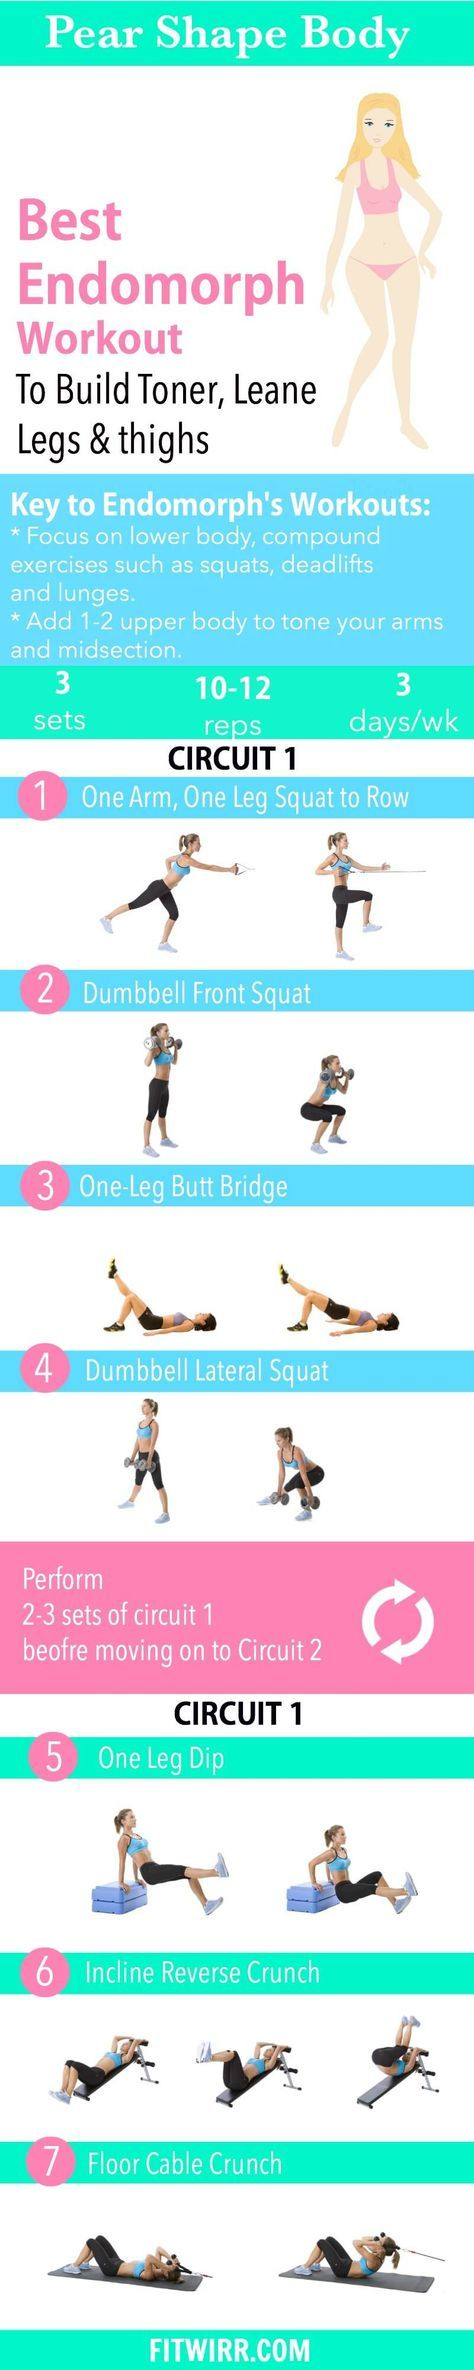 Pear Shaped Body Endomorph Workout Plan